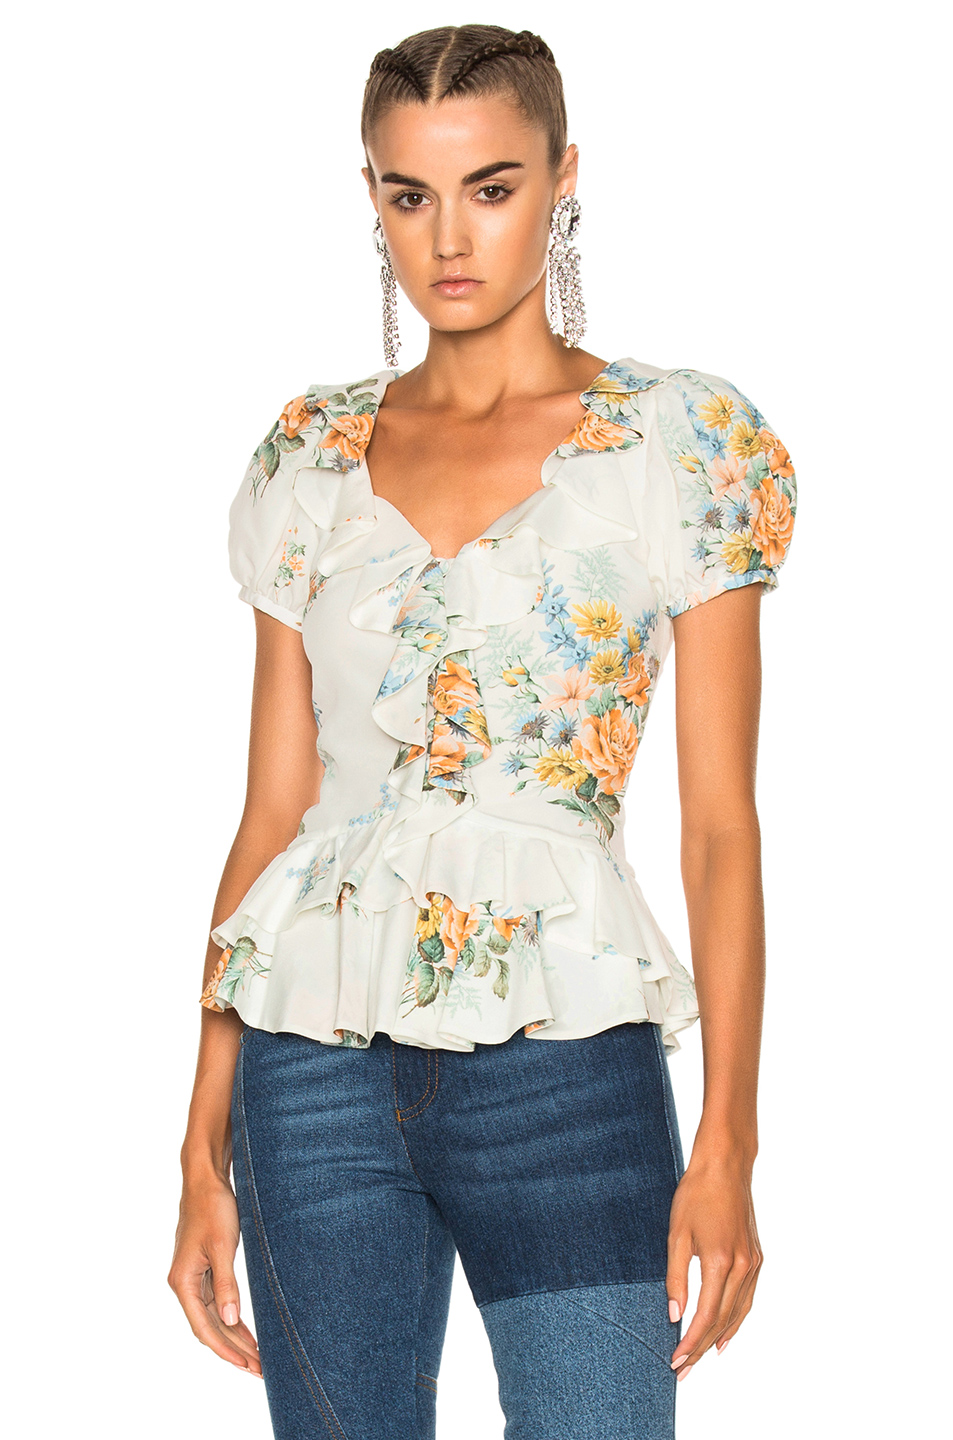 Alexander McQueen Printed Ruffle Blouse in Blue,Green,Floral,Orange,White